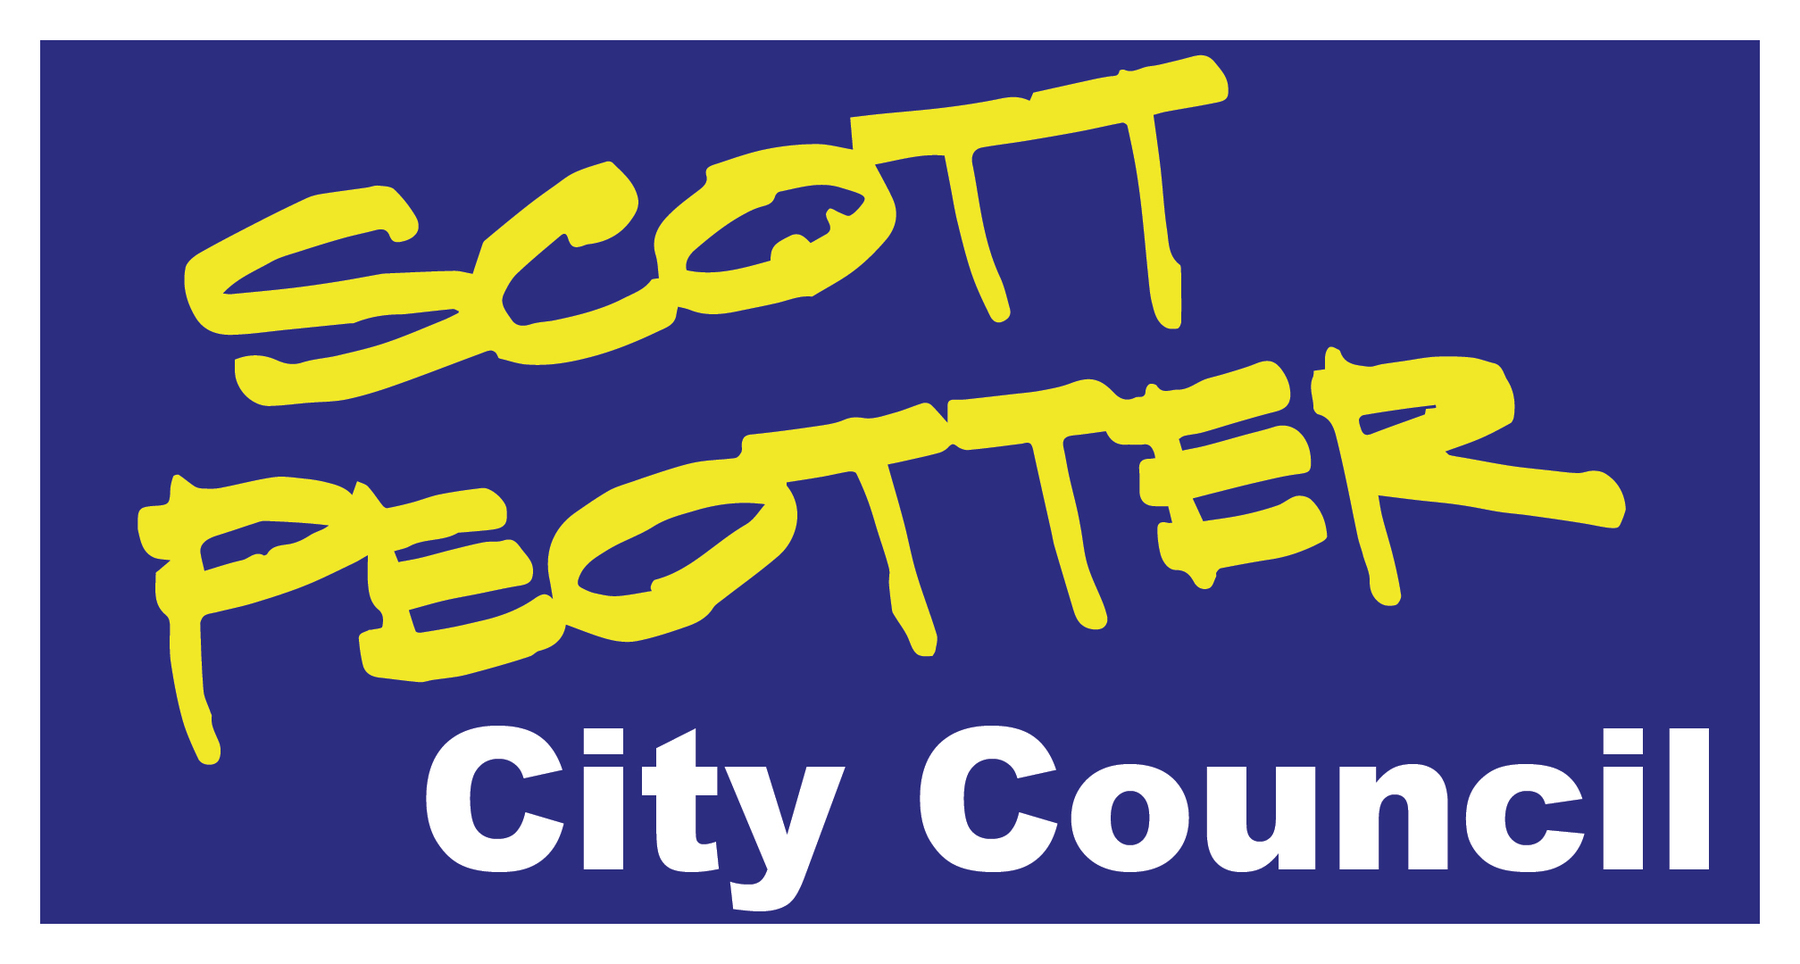 Scott Peotter for City Council 2018: Scott Peotter for City Council